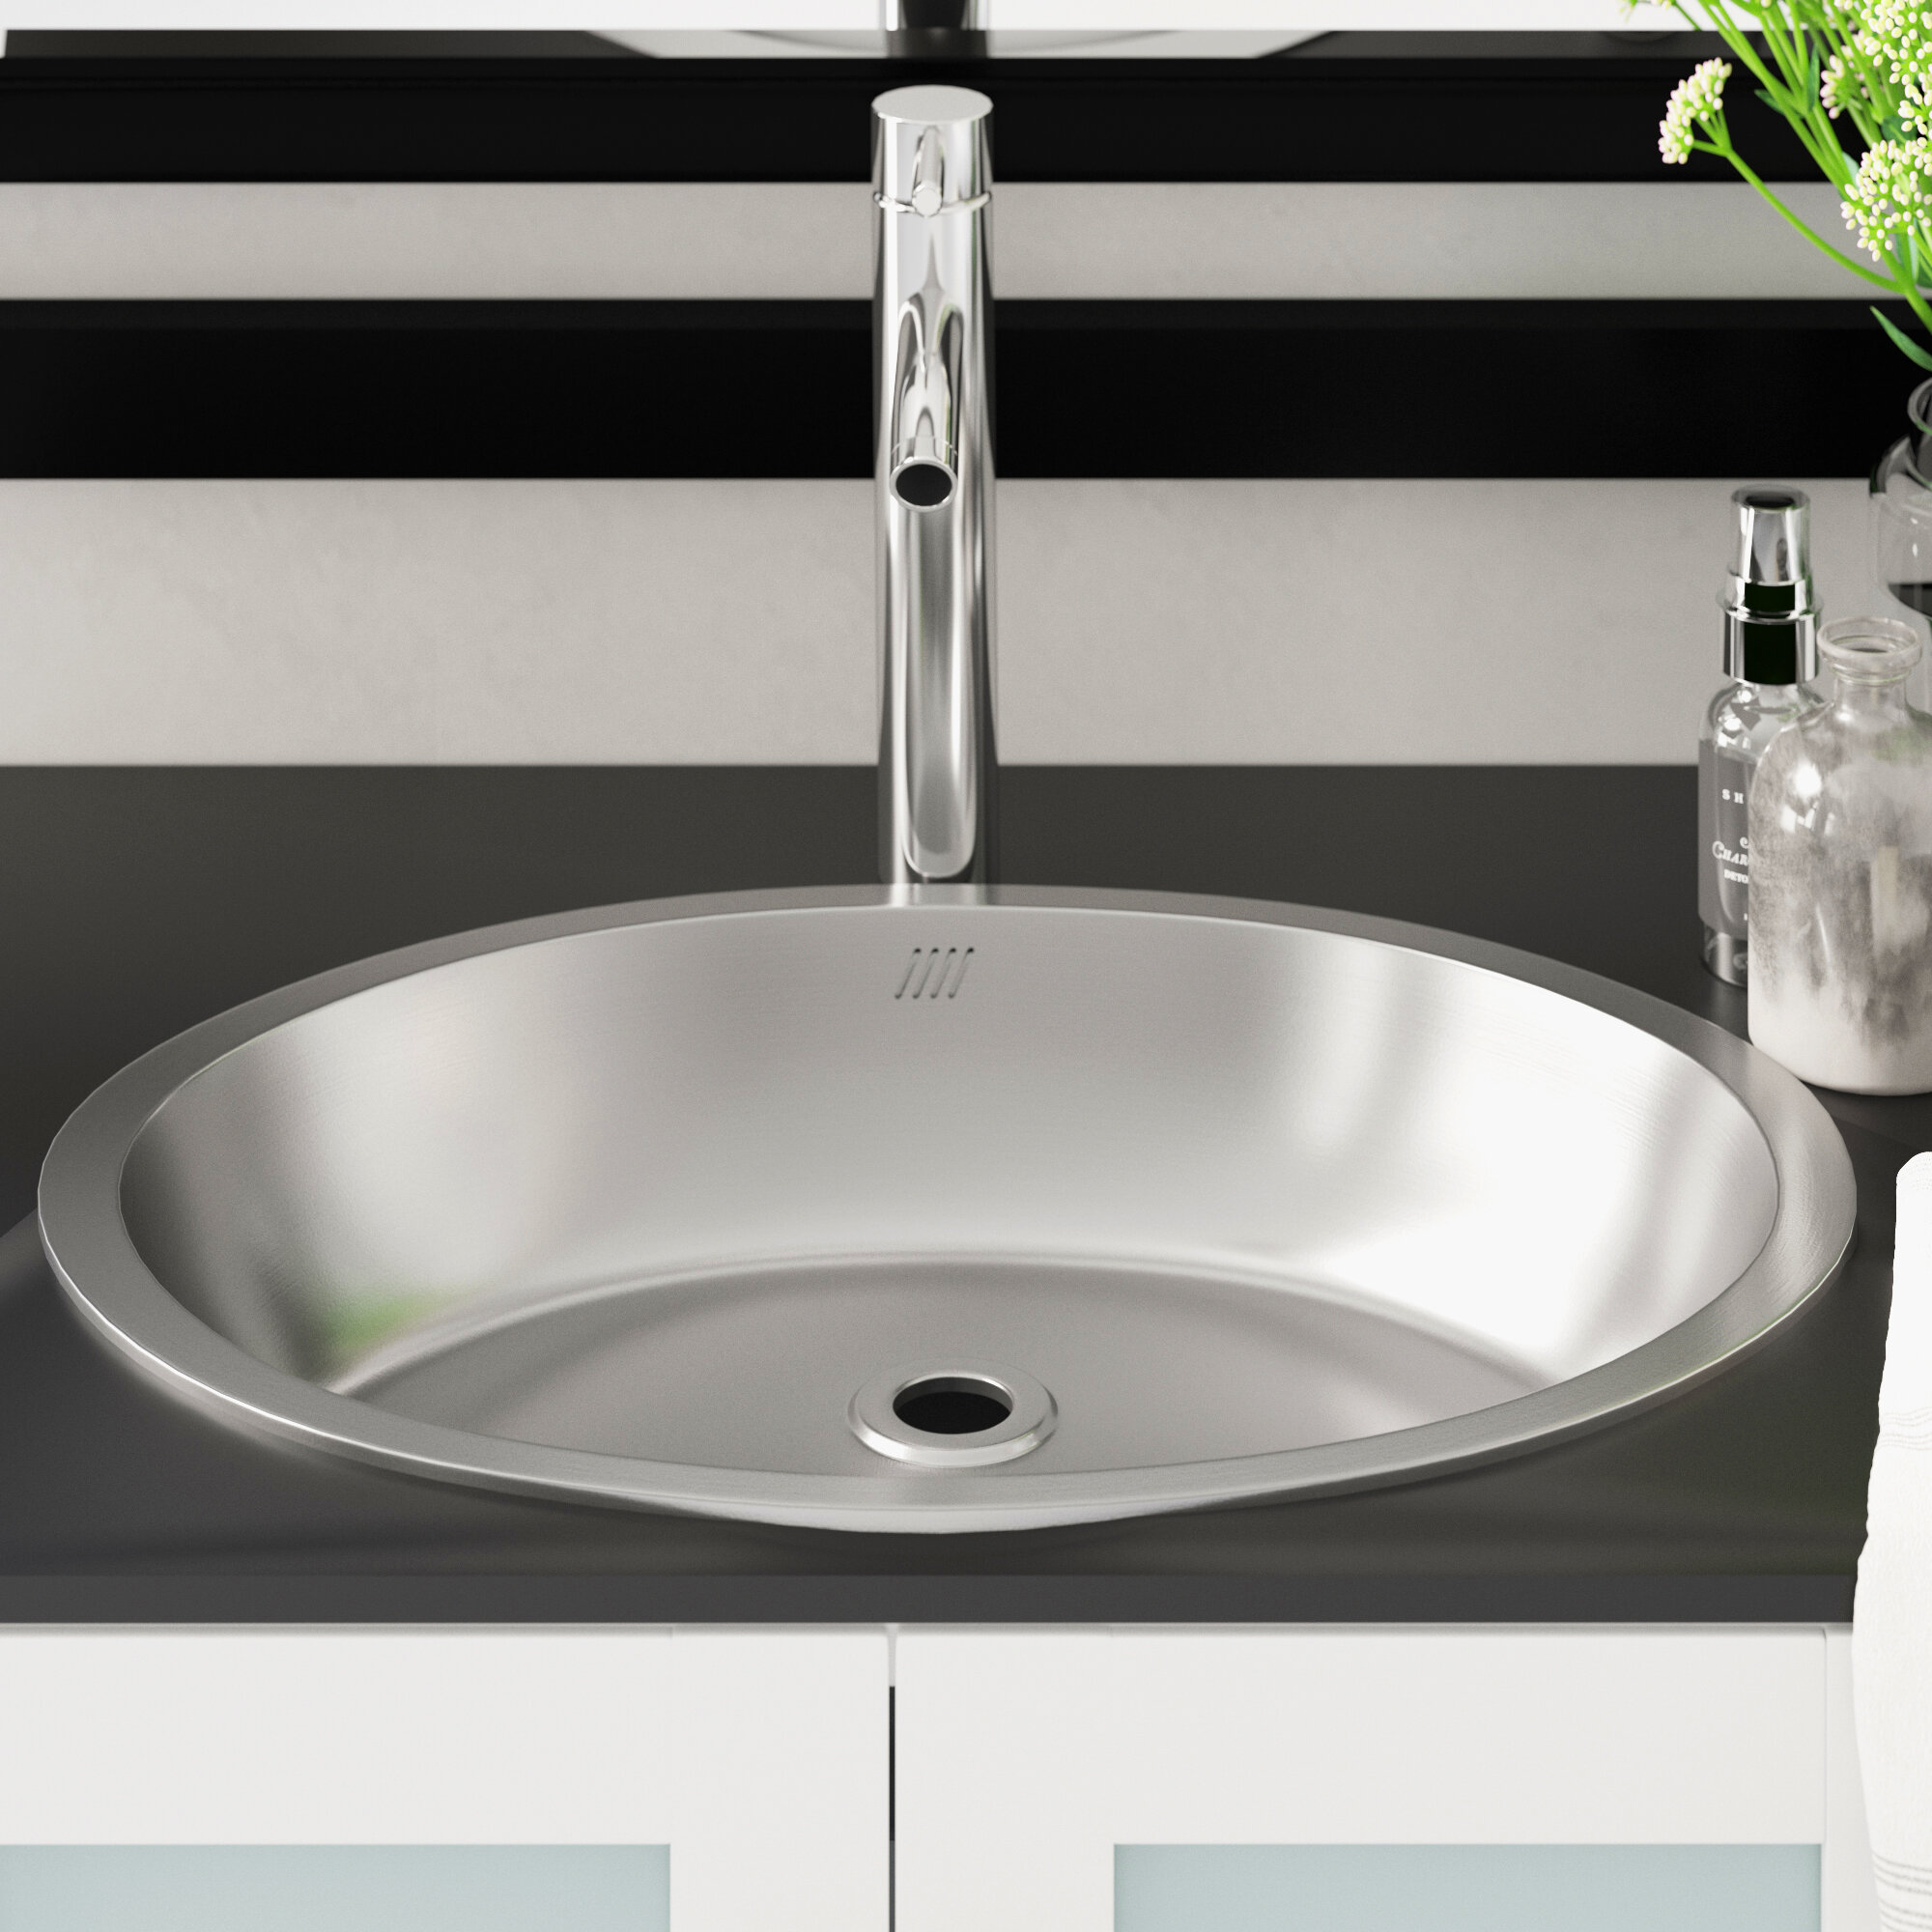 Bon 1917 Stainless Steel Oval Dual Mount Bathroom Sink With Overflow